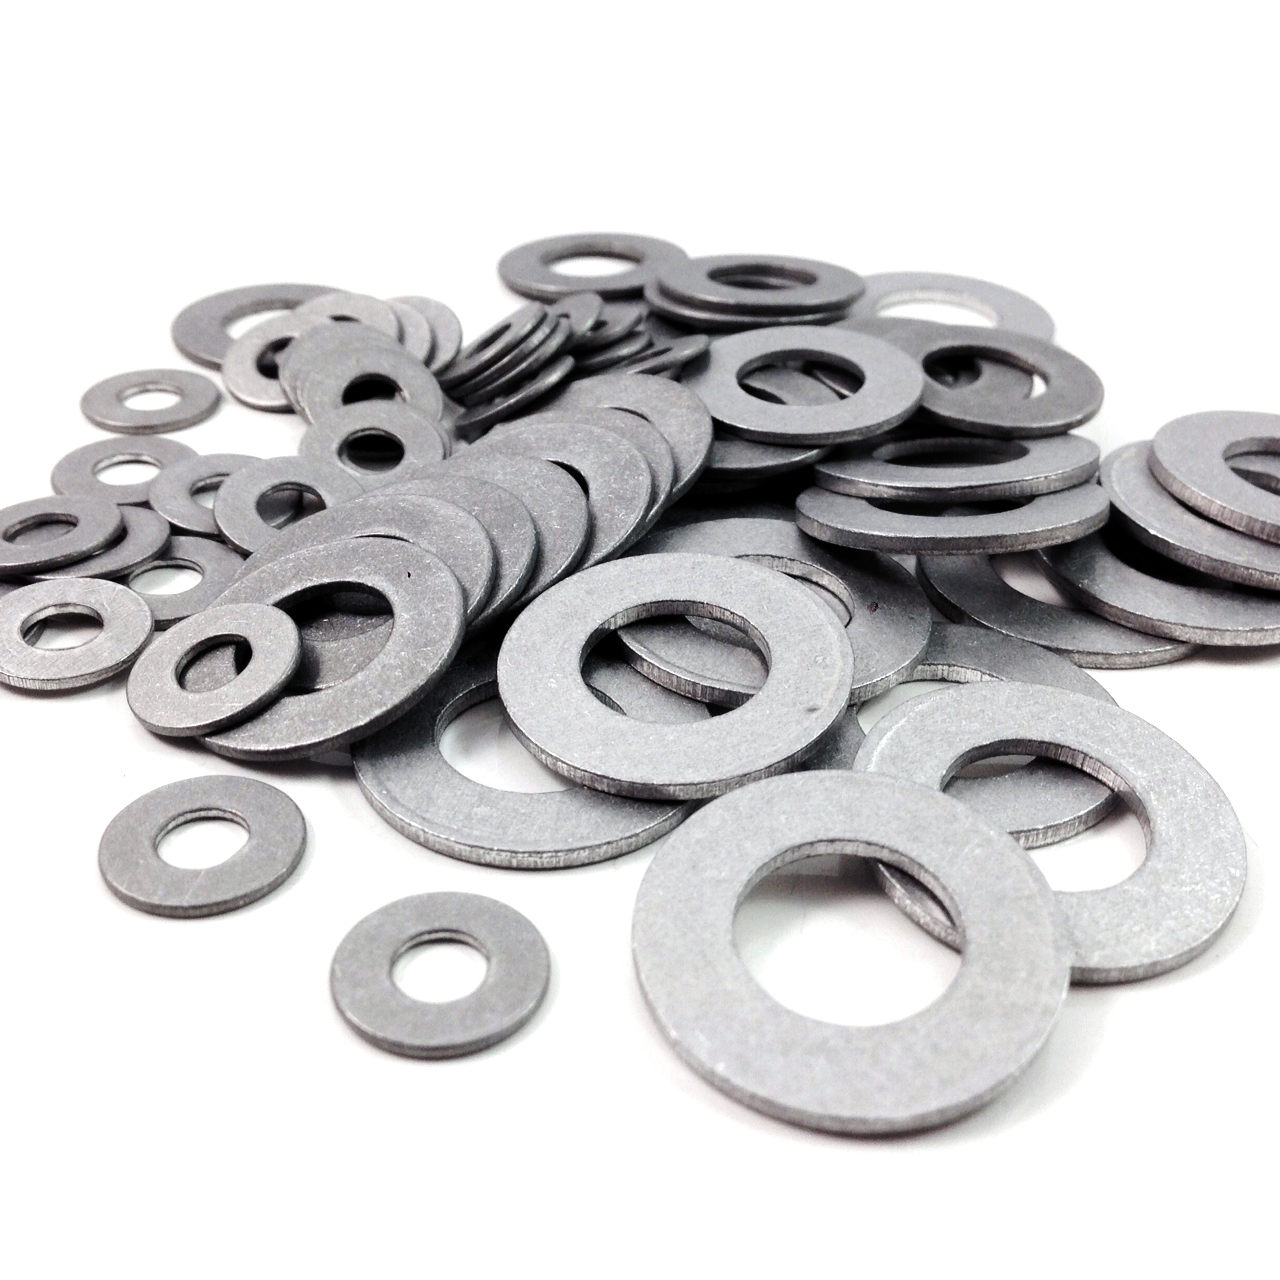 ALUMINIUM WASHERS M6 to M22 Various Quantities Sealing Washer